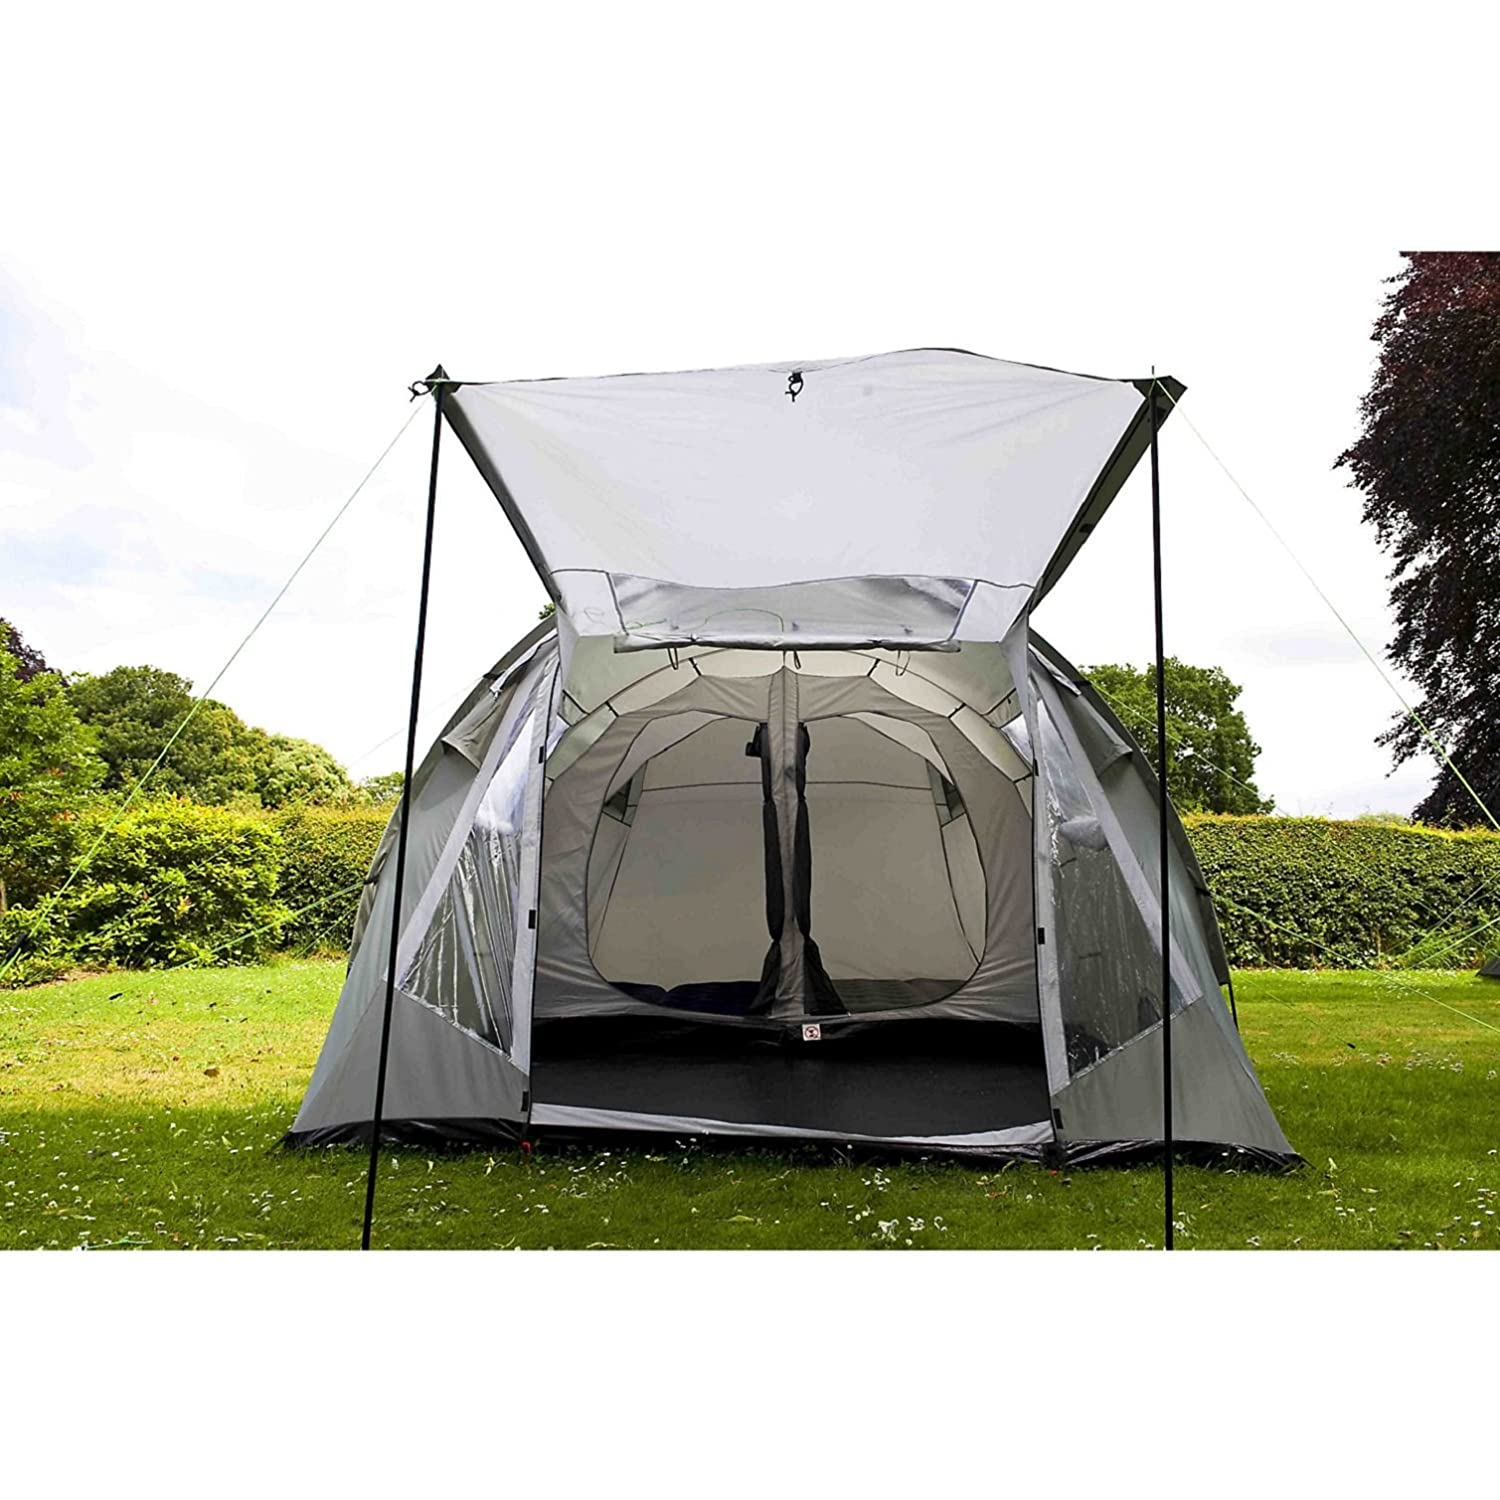 Coleman Coastline Deluxe Tent Green/Grey 4 Person Amazon.co.uk Sports u0026 Outdoors  sc 1 st  Amazon UK : coleman coastline 4 deluxe tent - memphite.com